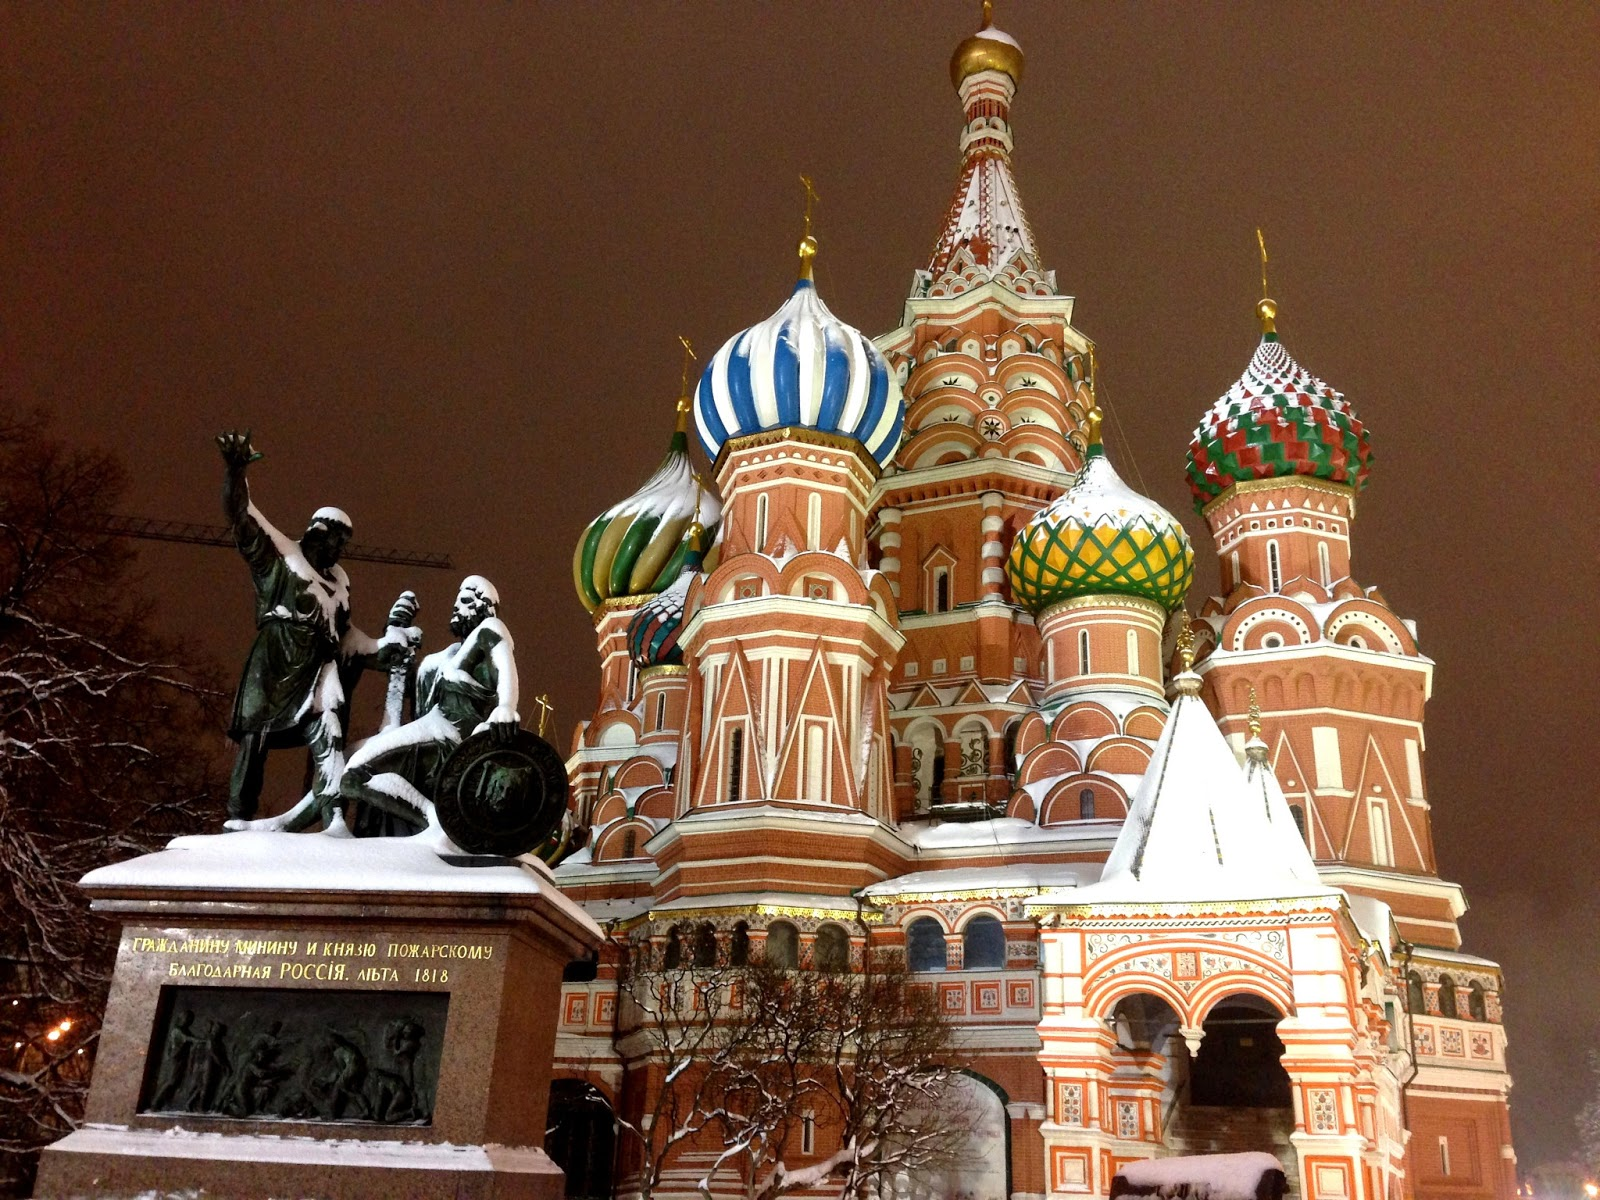 2014 Winter Olympics: Moscow \u2013 Red Square, St. Basil Cathedral ...